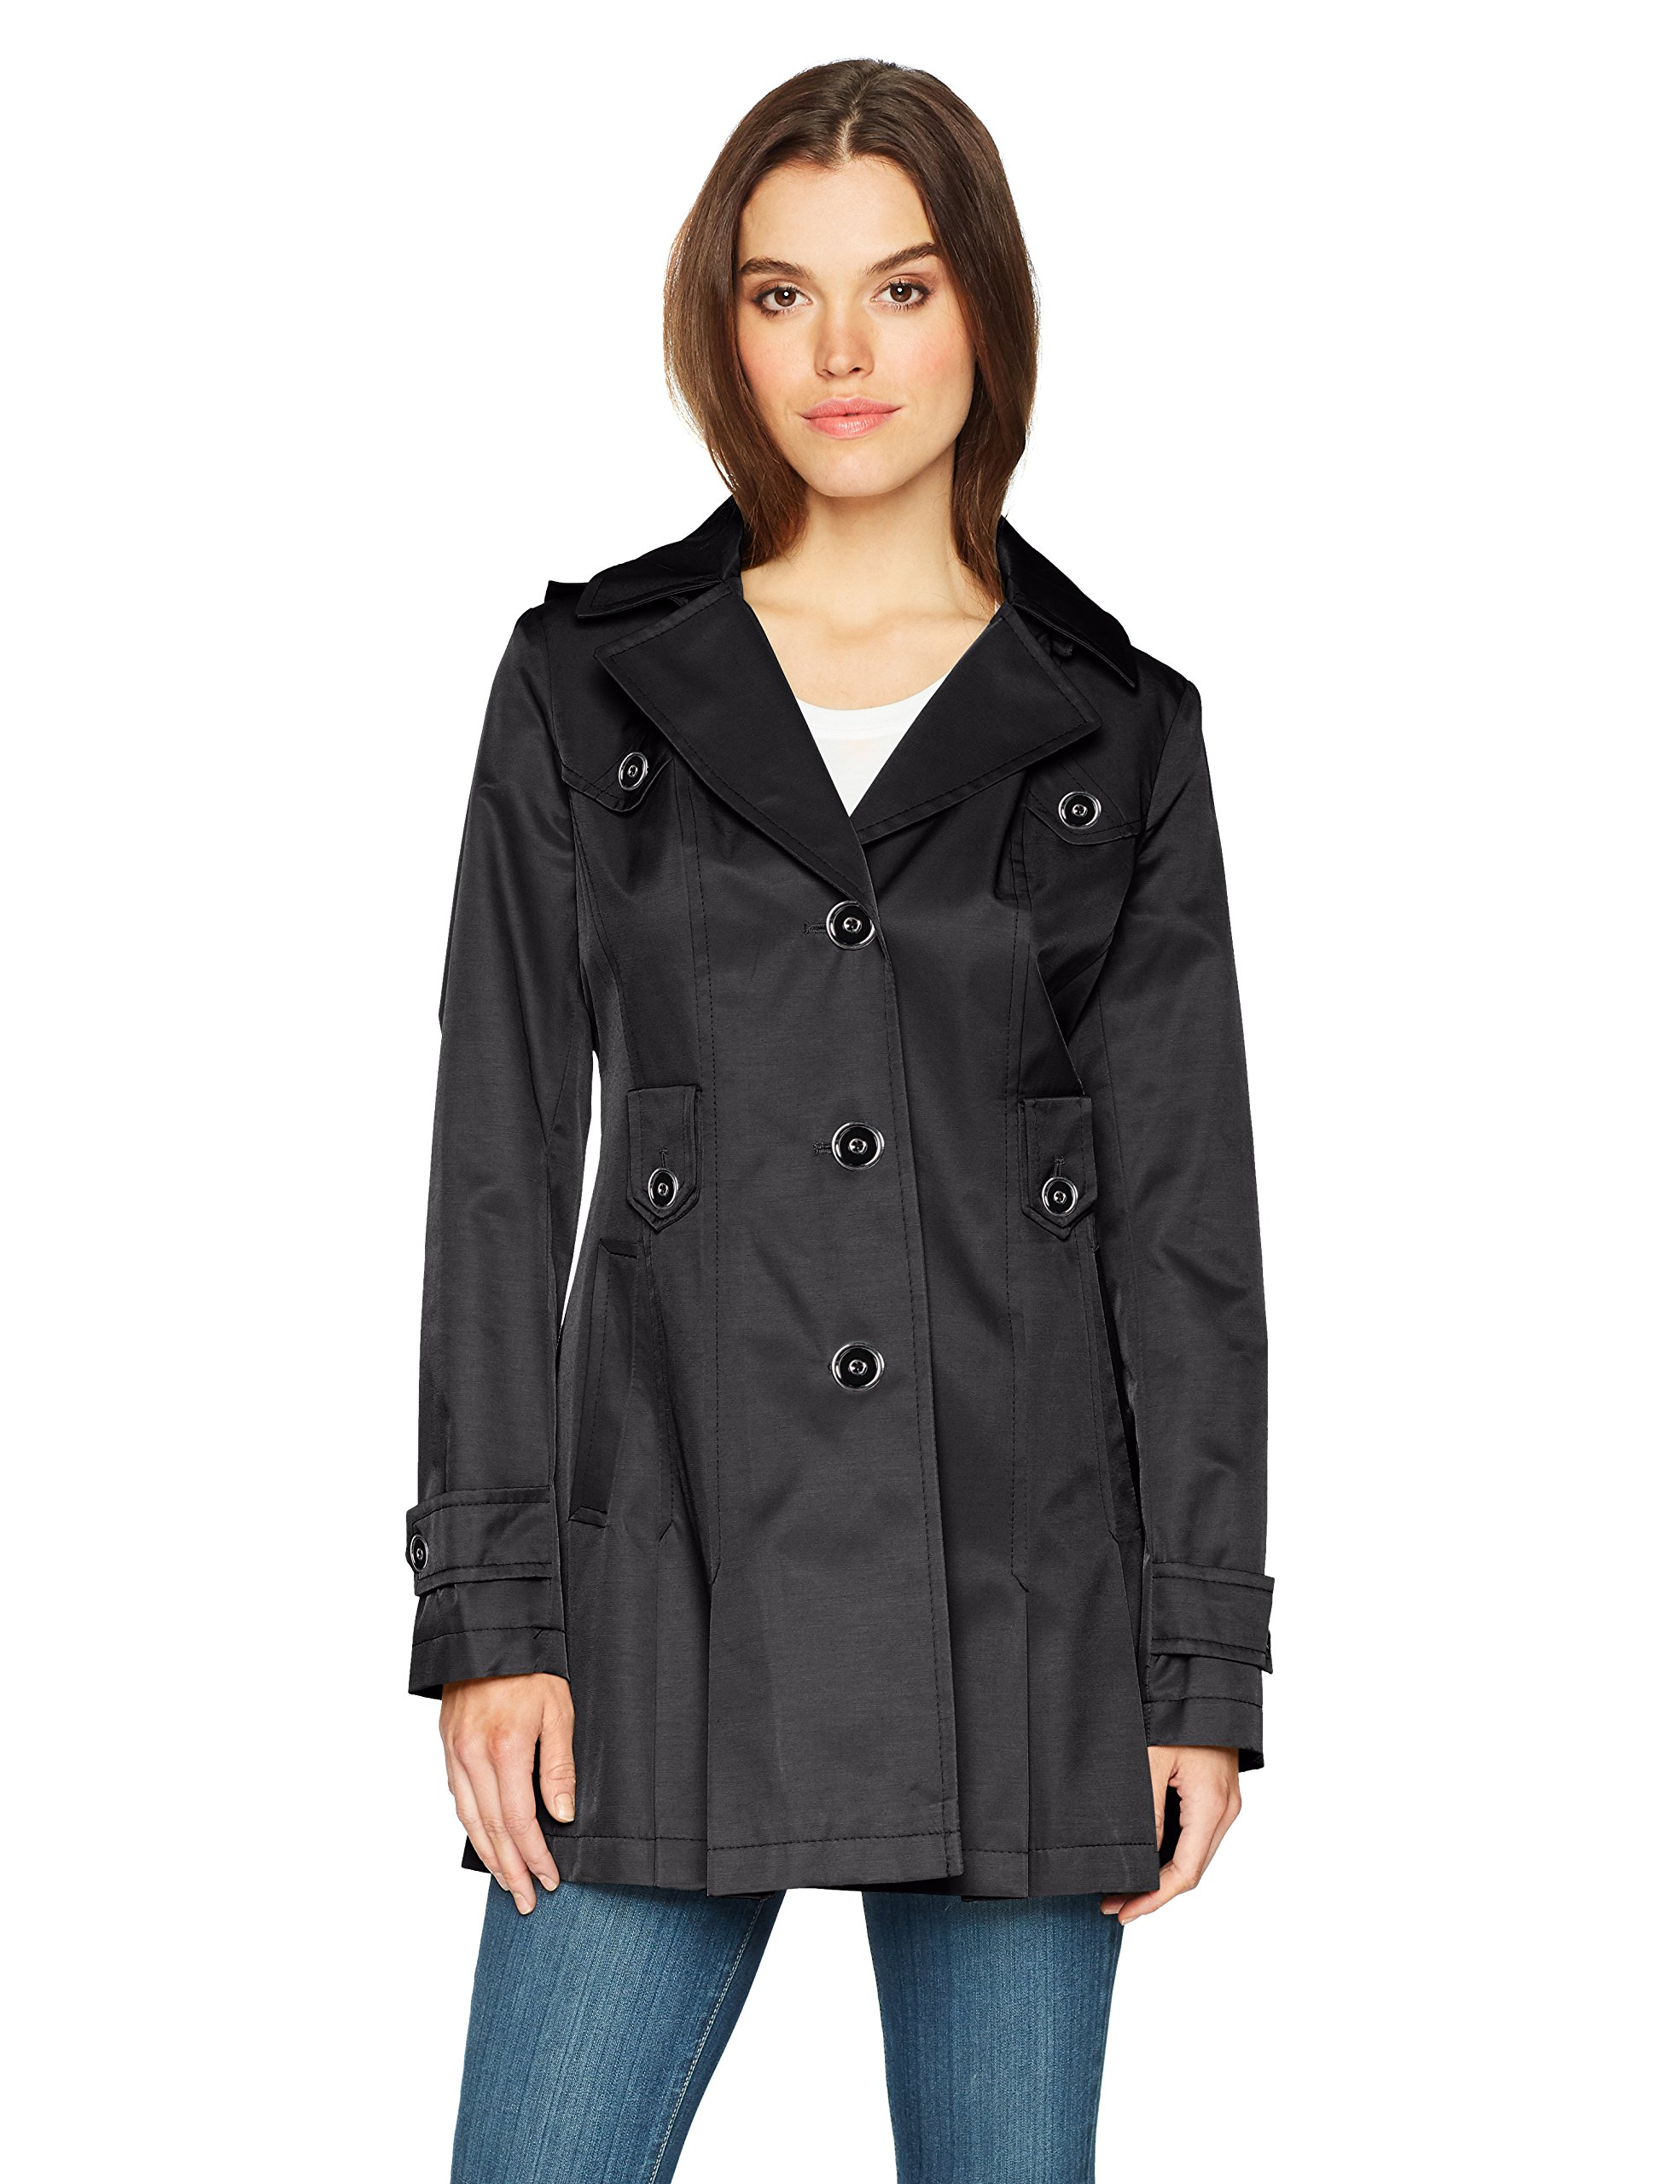 Via Spiga Women's Single-Breasted Belted Trench Coat with Hood, Black, X-Large by Via Spiga